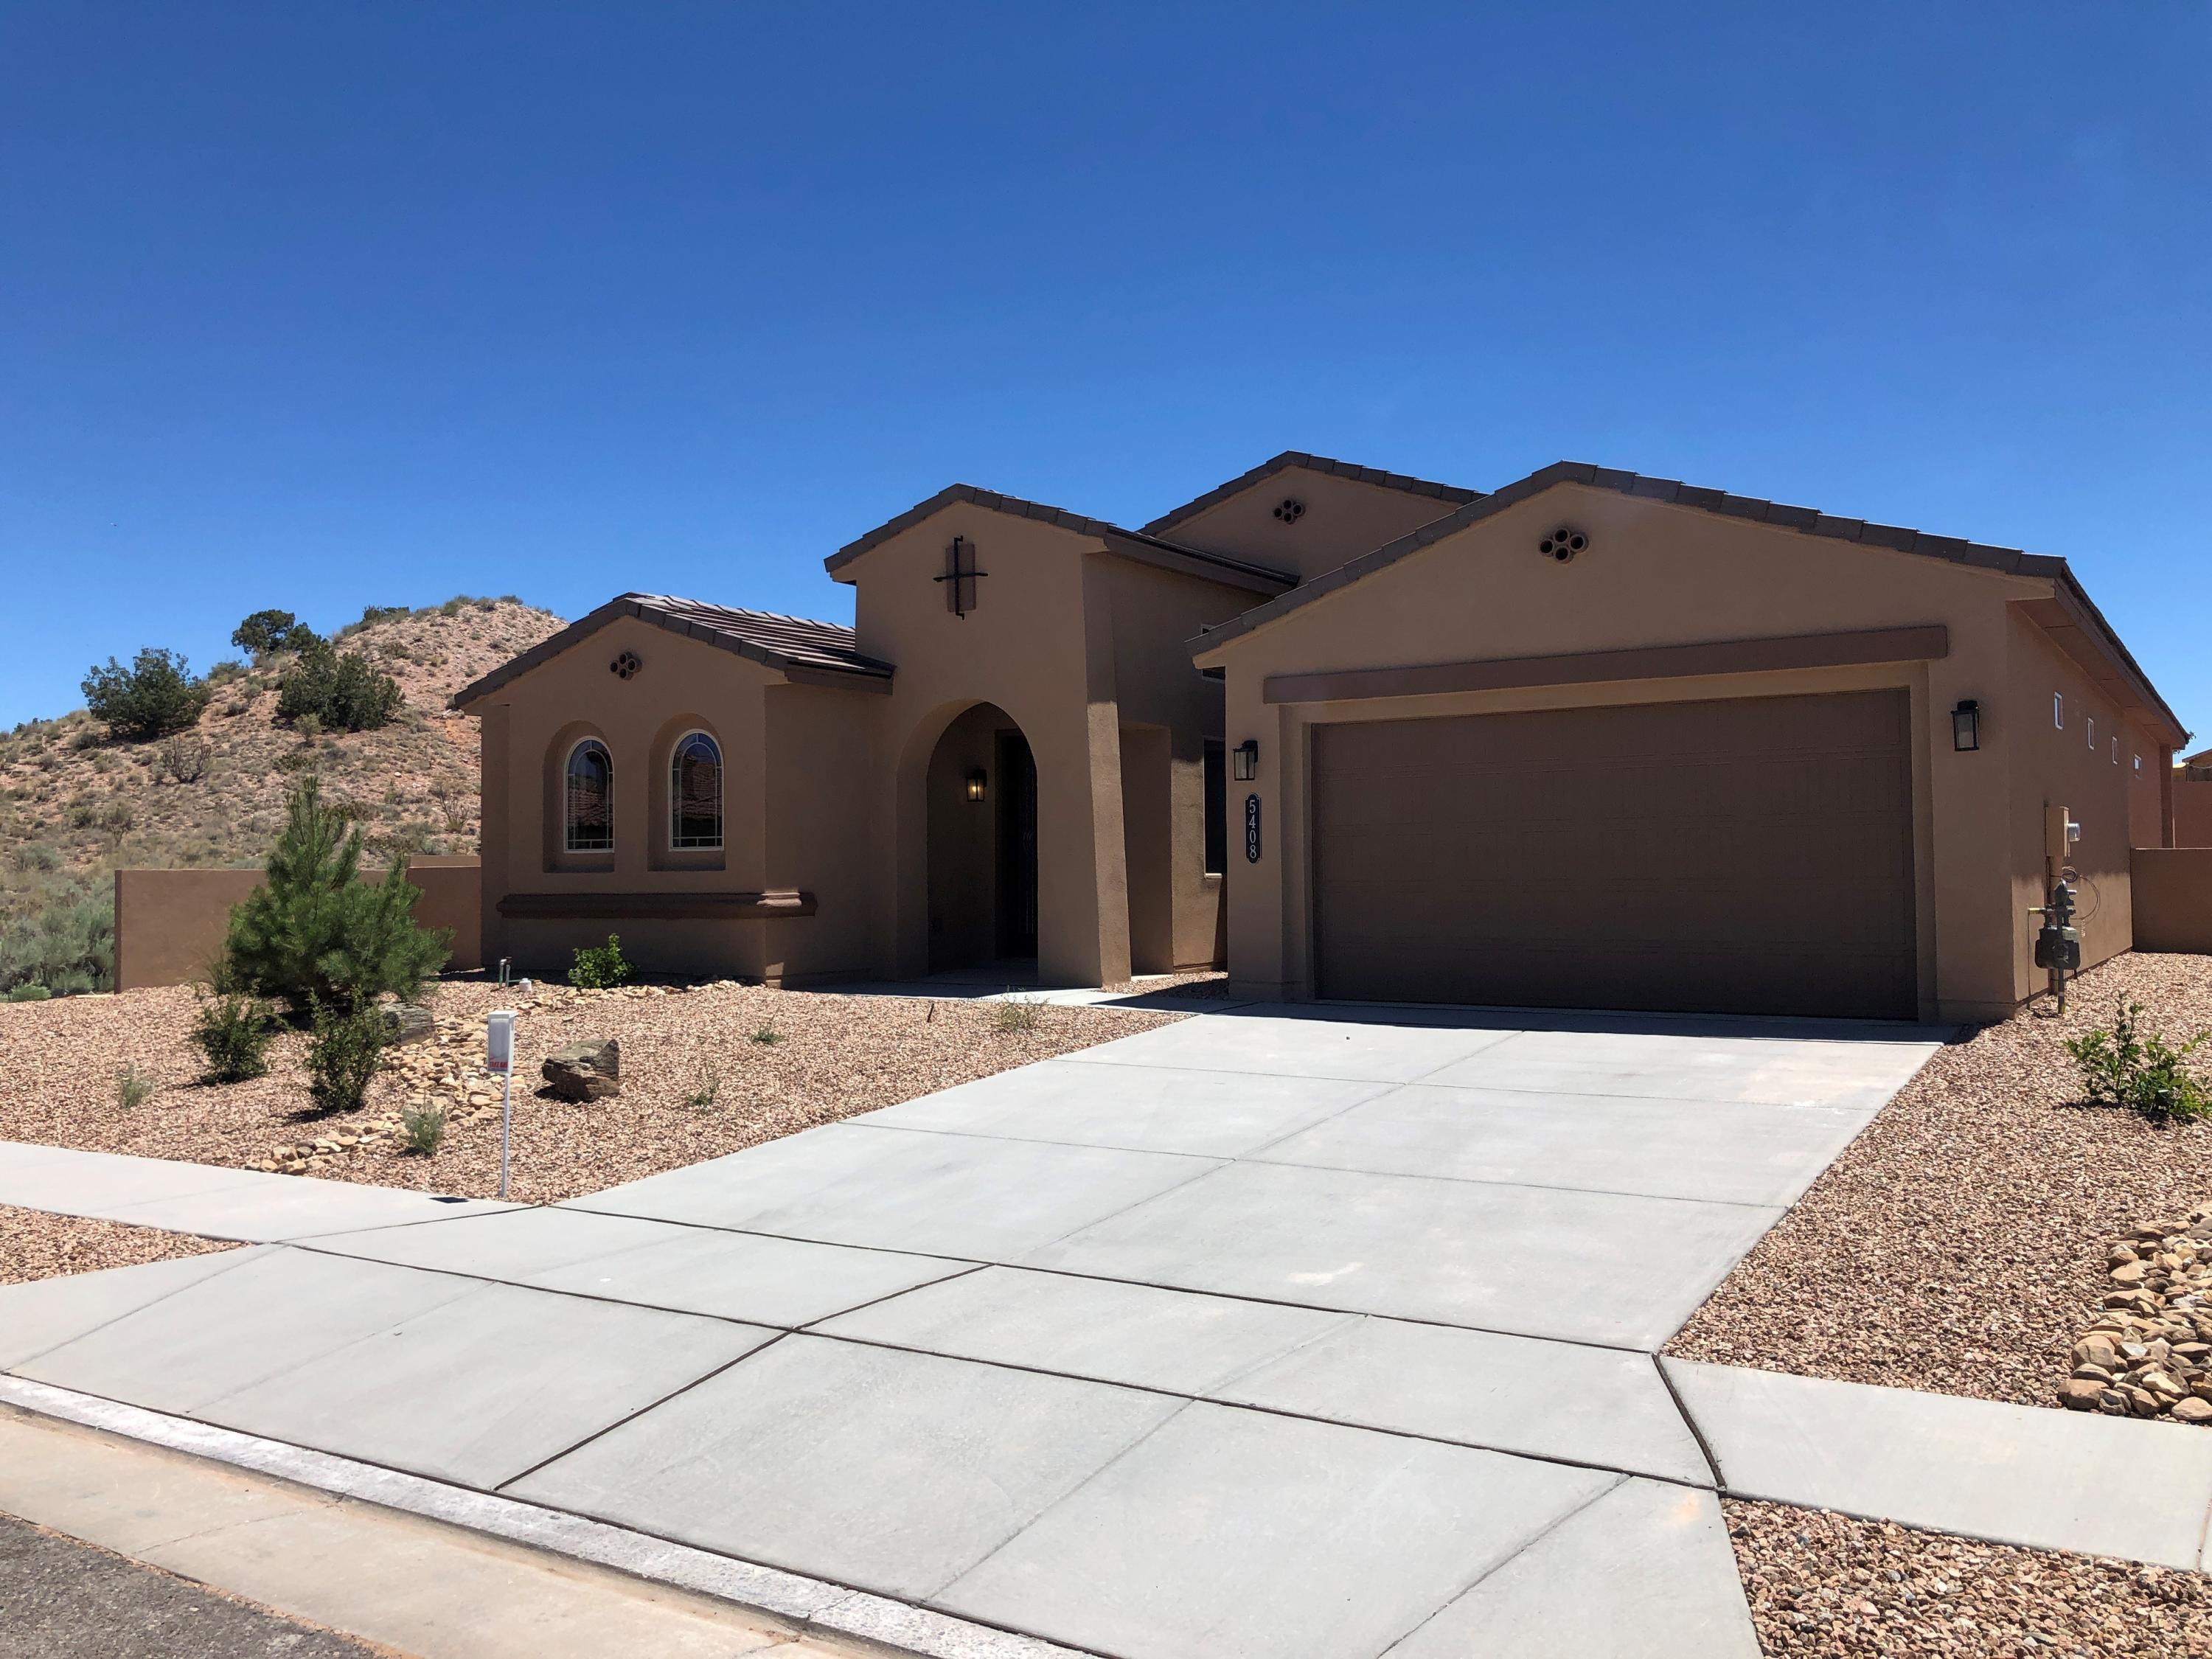 This beautiful Buxton floorplan sits on an over-sized, 83 foot lot at The Peaks in fabulous Mariposa. The open living area has lots of natural light and is an entertainers delight. Kitchen has granite counters and island. Whirlpool stainless appliances include: 5-burner cooktop, vent, dishwasher and built-in oven and microwave. New Mexico Green Built And a SMART HOME. Enjoy the lifestyle of a Private Community Center that offers indoor and outdoor pools, parks, fitness center, full time activity director, and miles of hiking/biking trails. It's all about Lifestyle at beautiful Mariposa